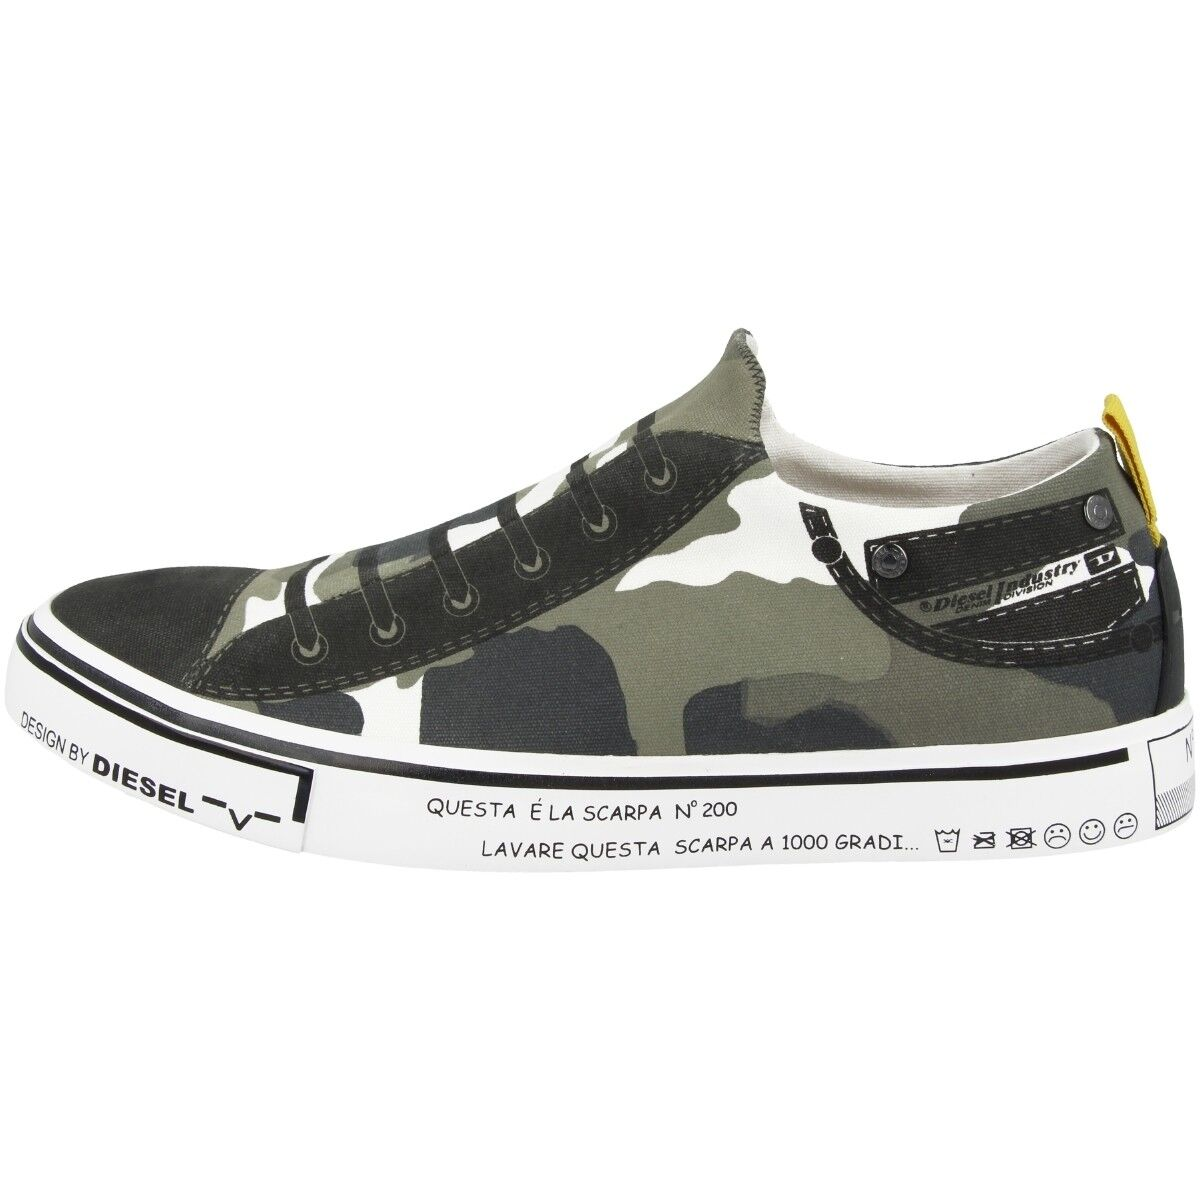 Diesel S-diesel imaginee Sneaker Low Top Sneaker imaginee Slip-on Chaussures y01700-p1640-h5254 00cf95